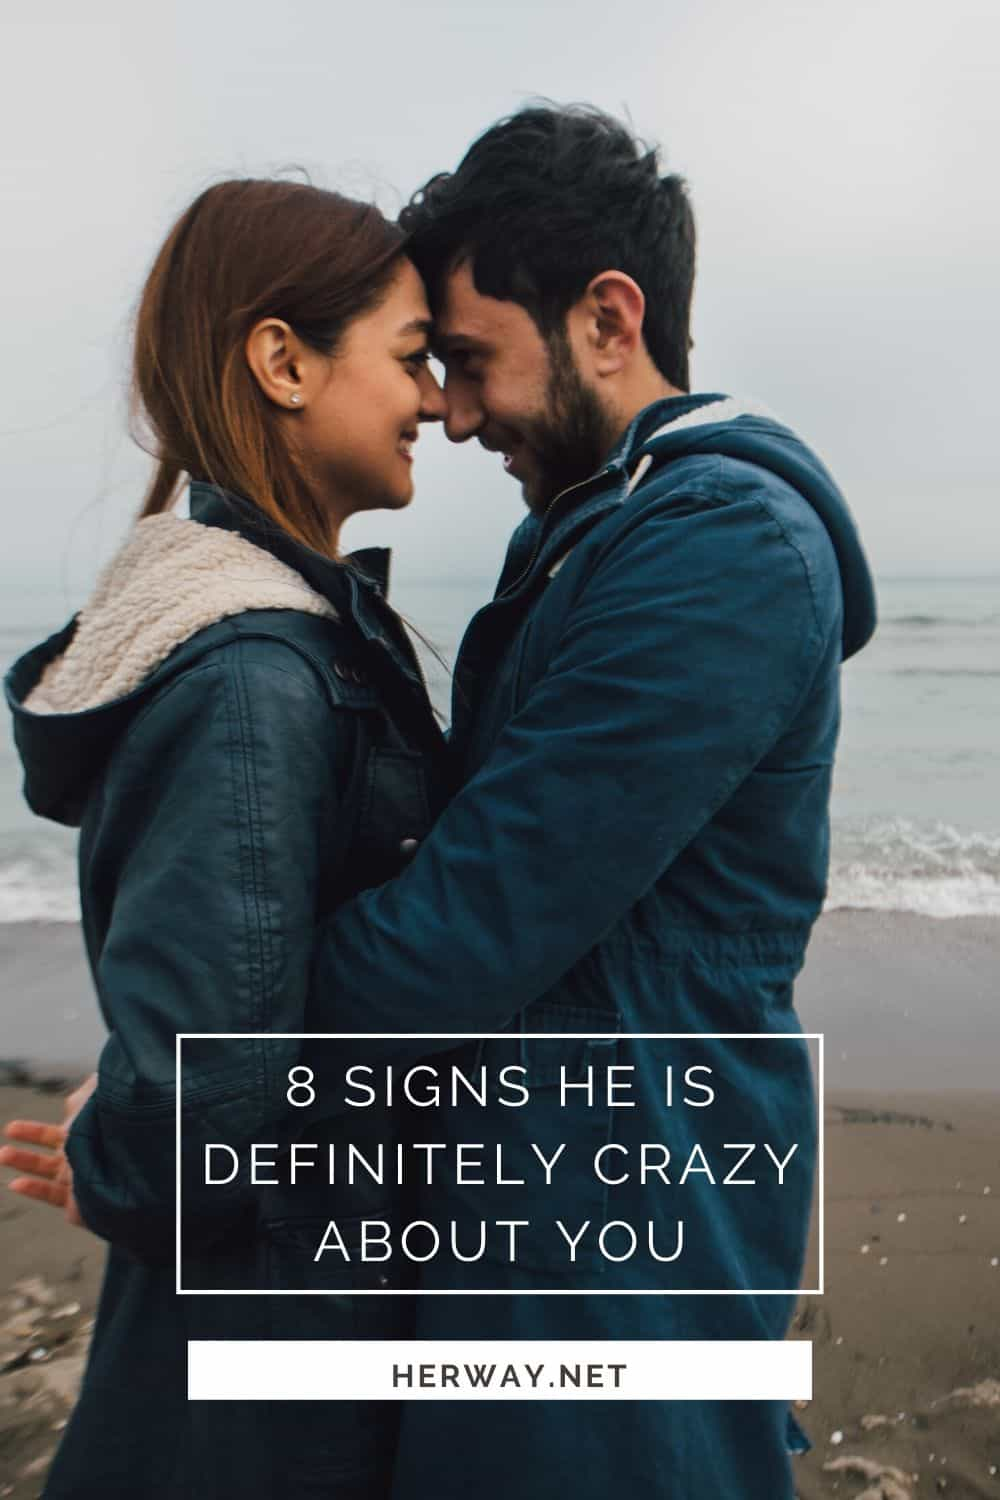 8 Signs He Is Definitely CRAZY About You